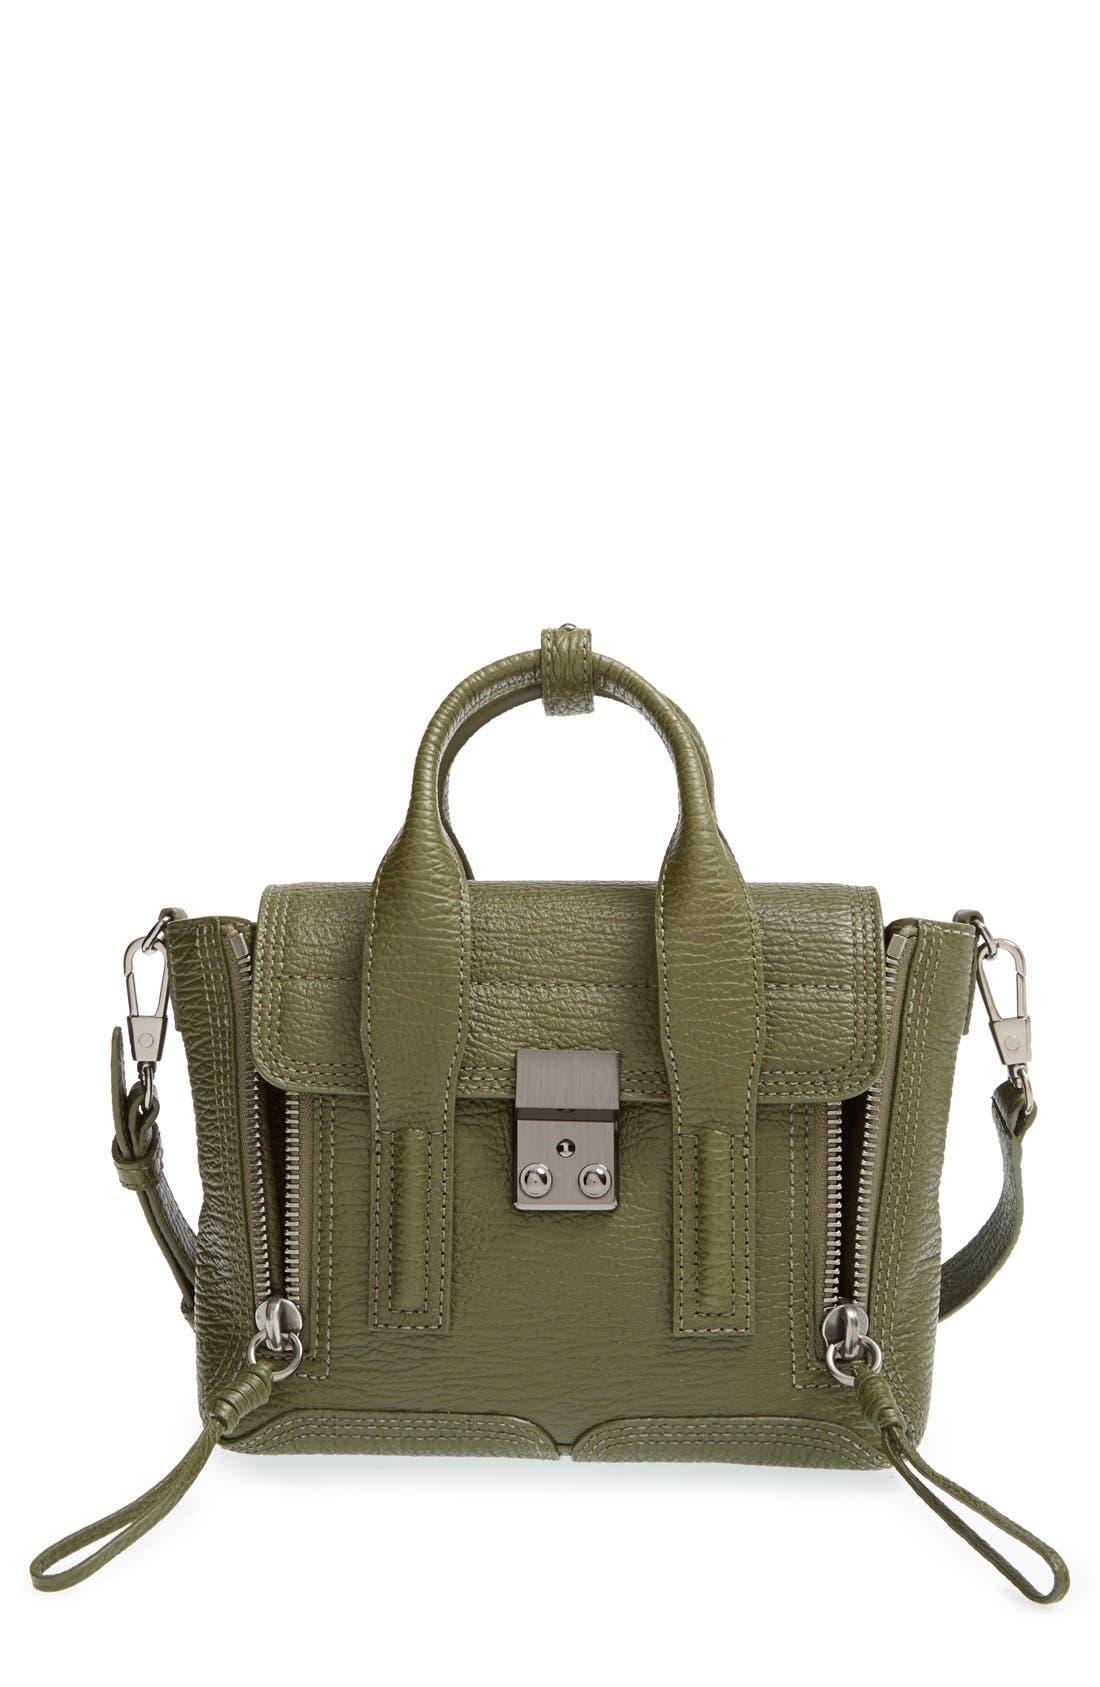 'Mini Pashli' Leather Satchel,                             Main thumbnail 1, color,                             300